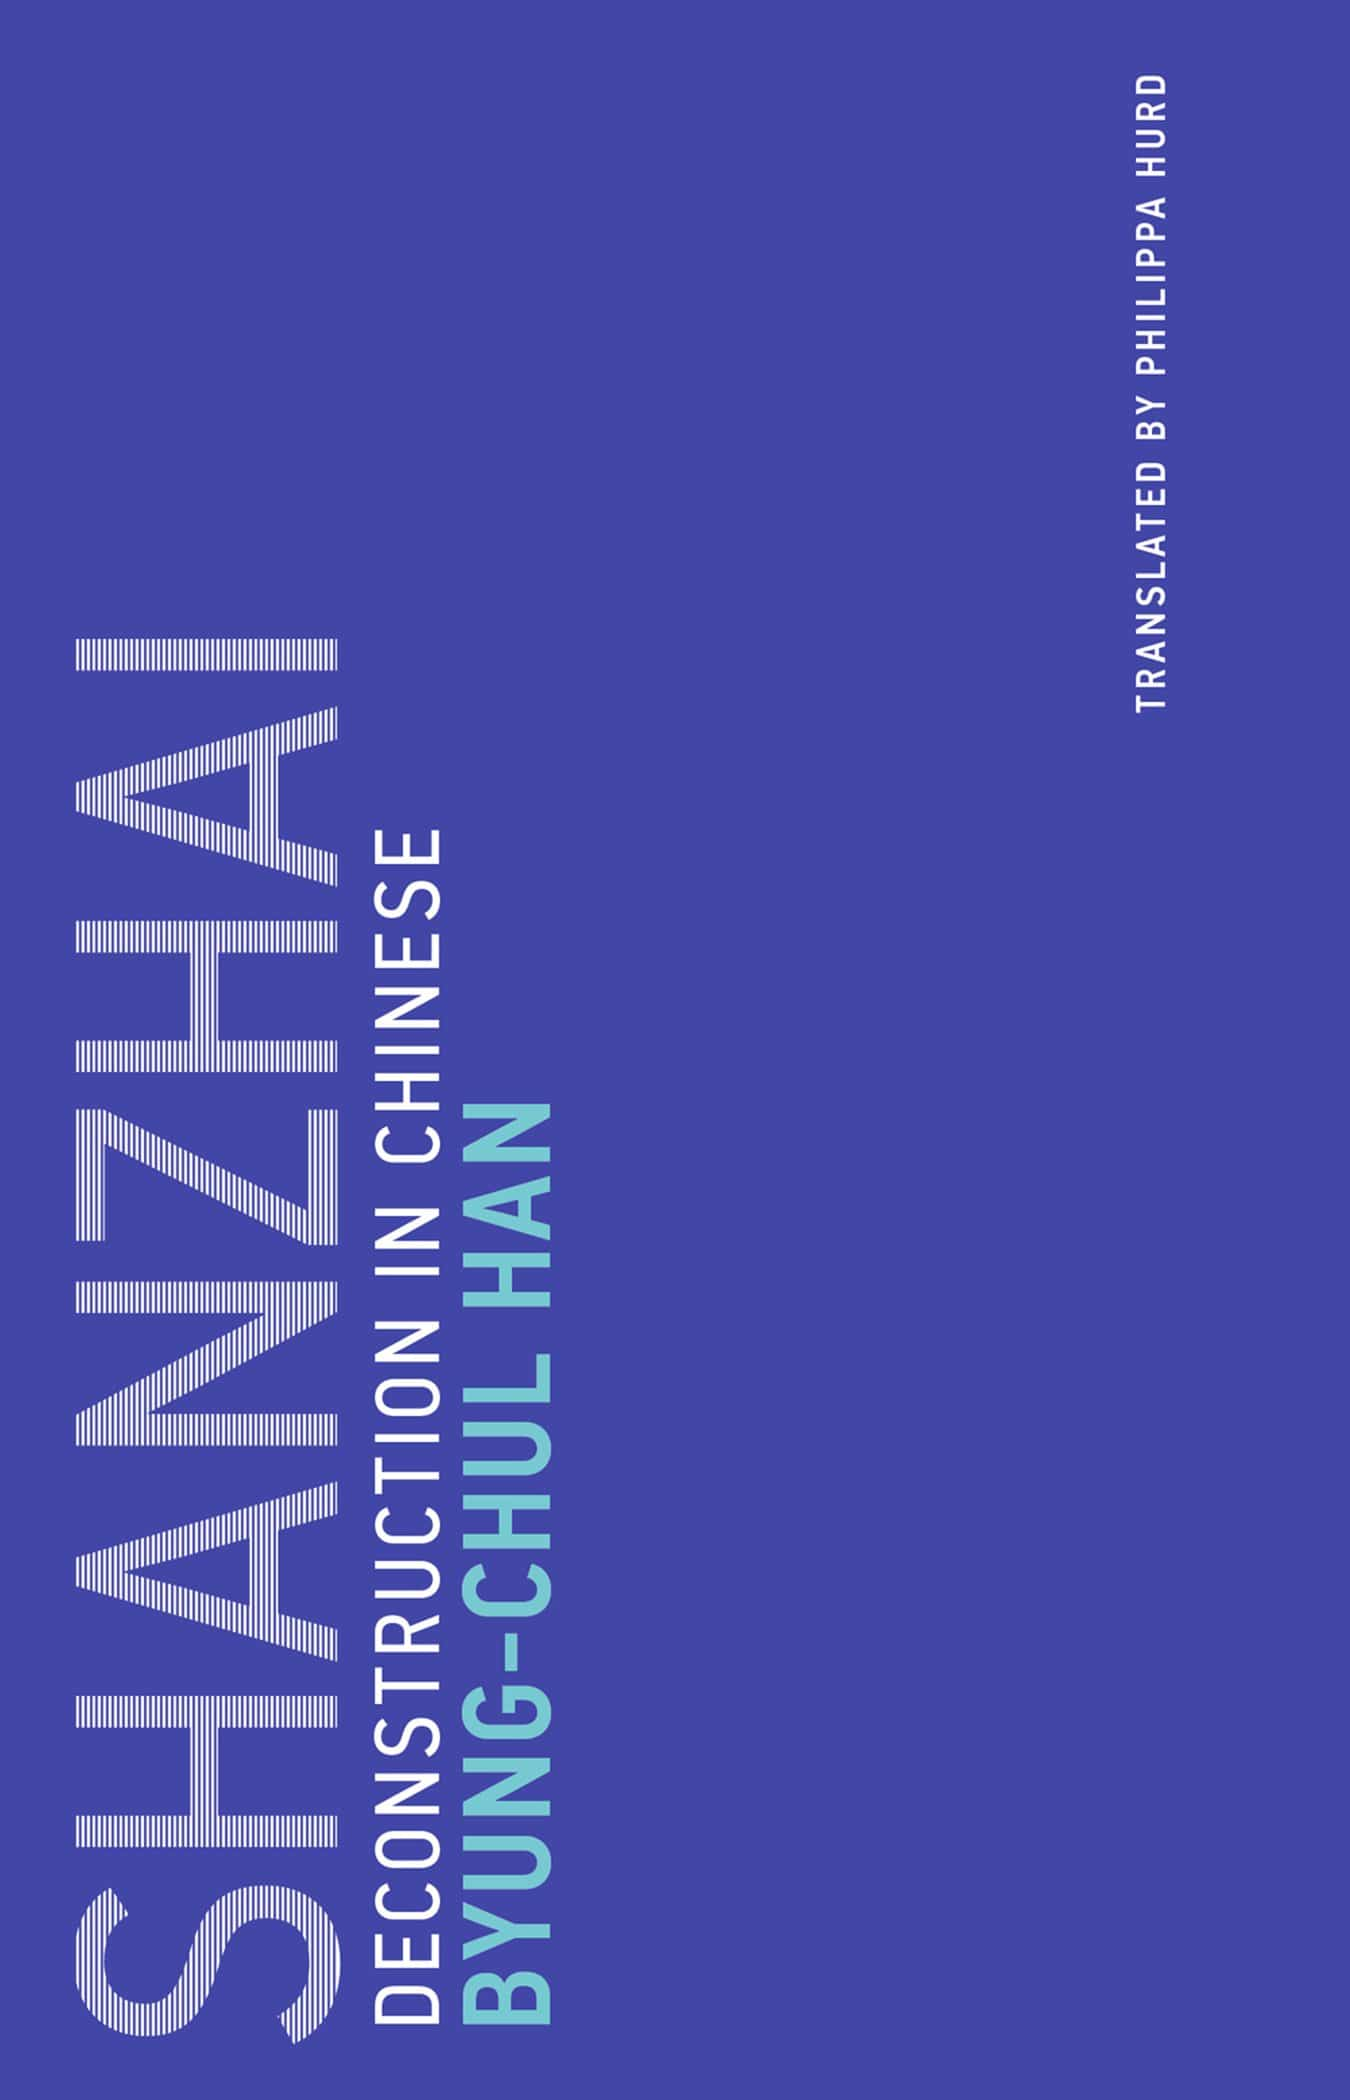 The cover of Shanzhai